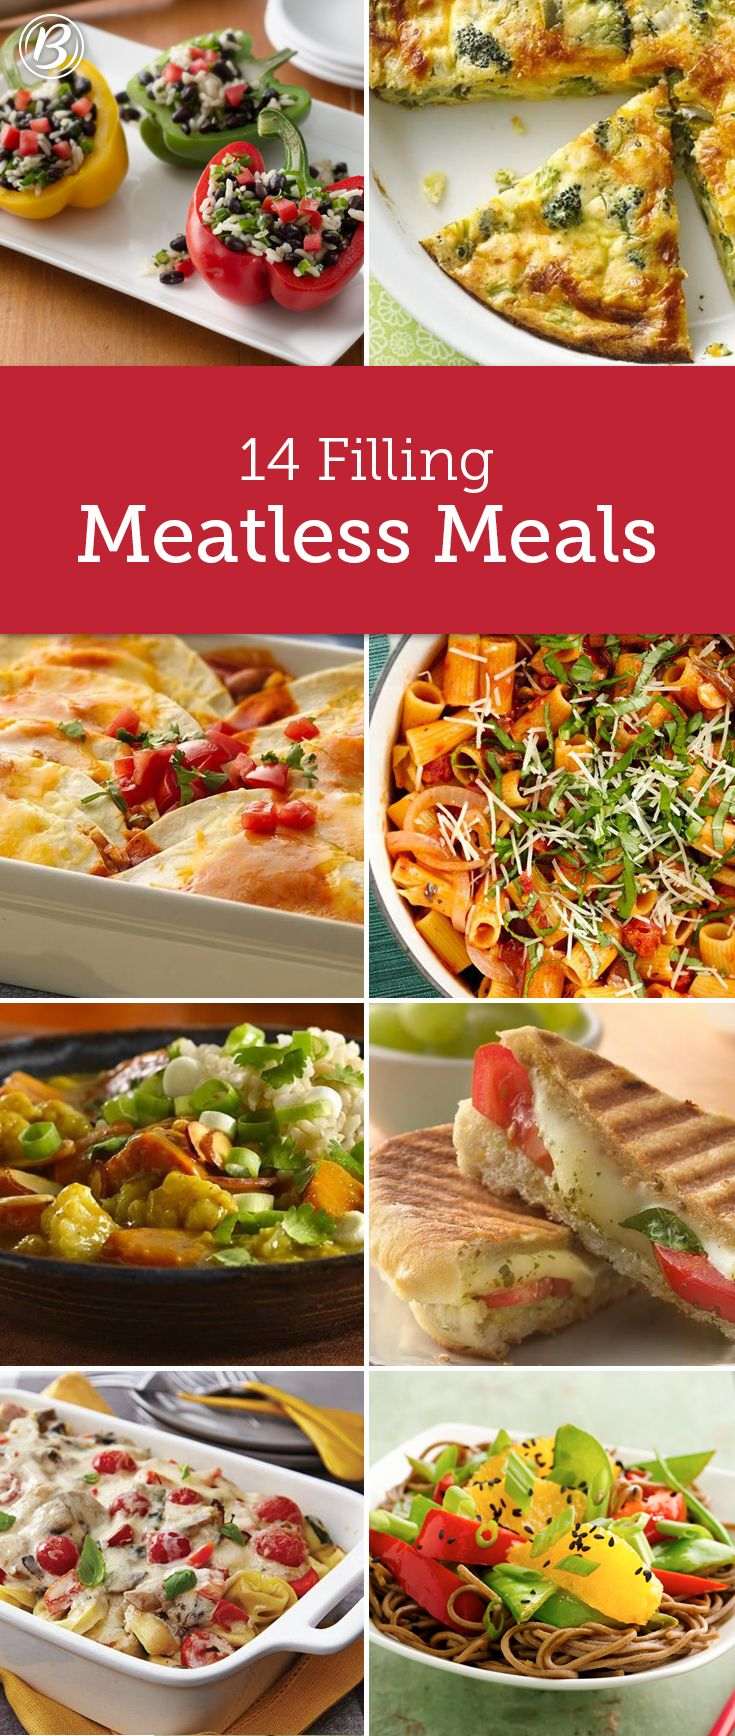 Whether you're looking to save calories or pennies, these meat-free meals deliver on both without skimping on flavor. We're willing to bet no one will even notice they're technically vegetarian!